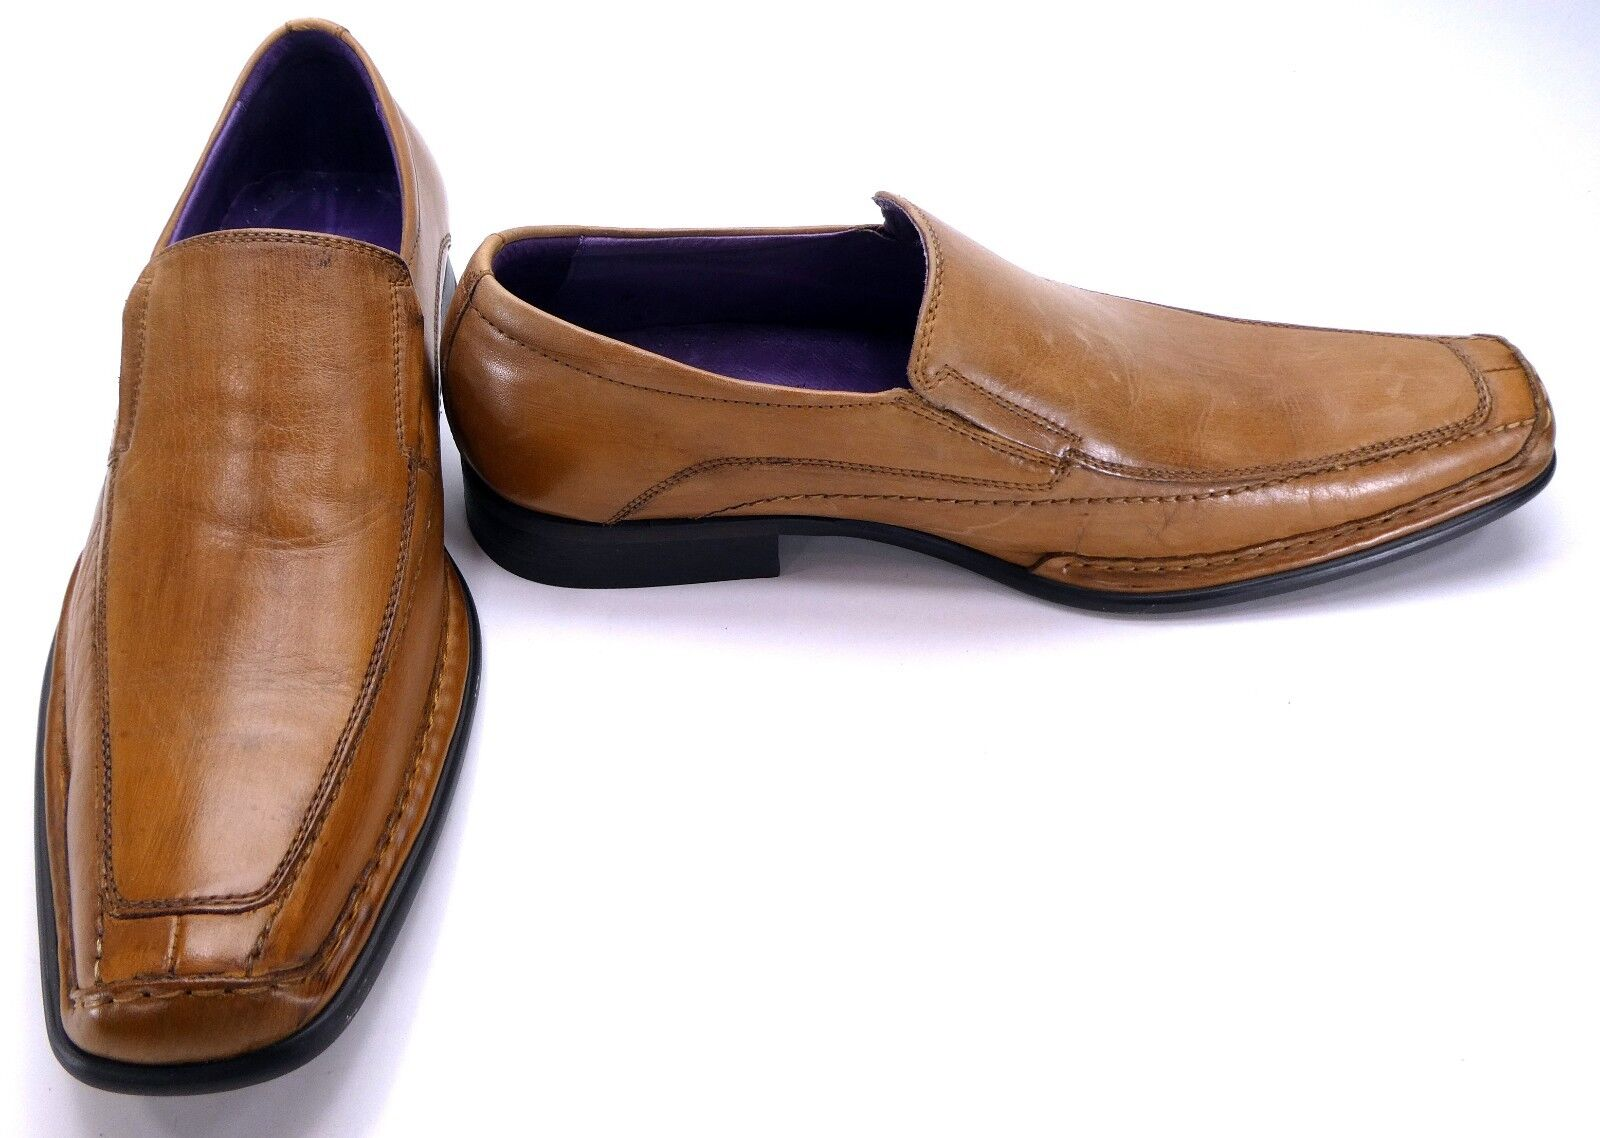 Giorgio Brutini Shoes Pelle Oxford Loafers Brown    Size 8 41e972